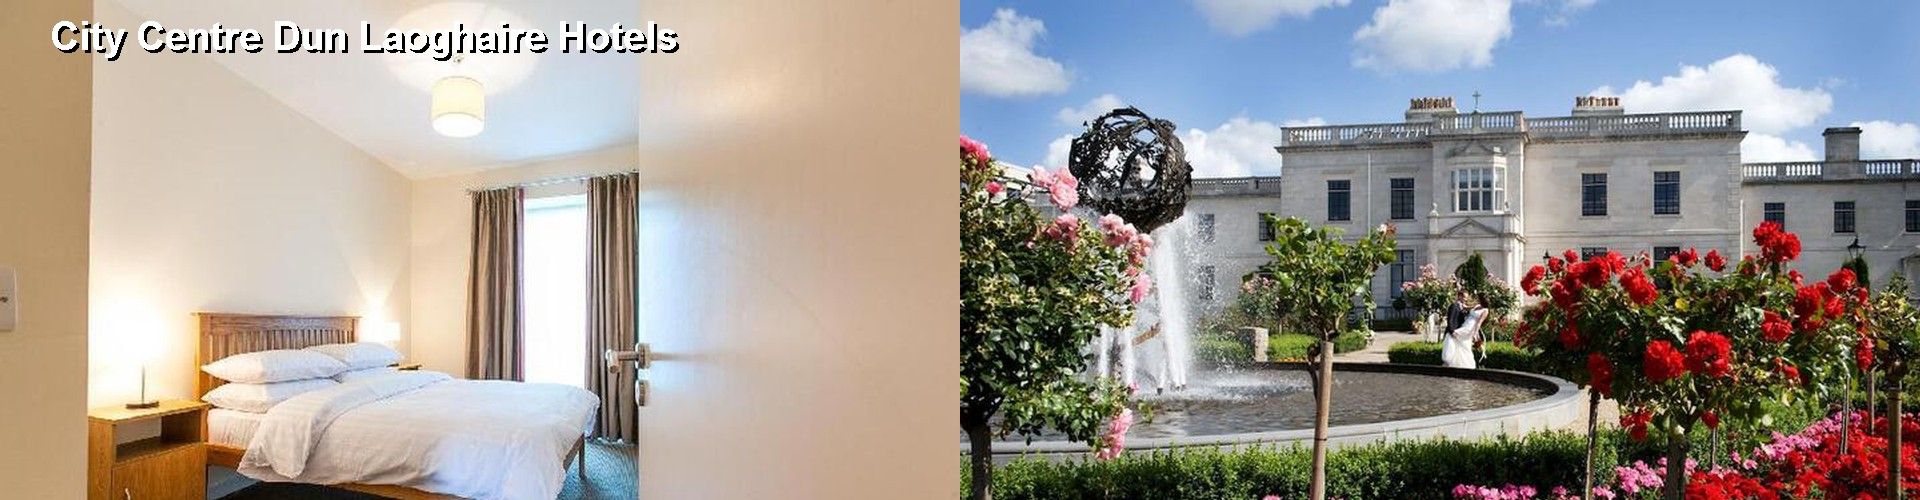 5 Best Hotels near City Centre Dun Laoghaire